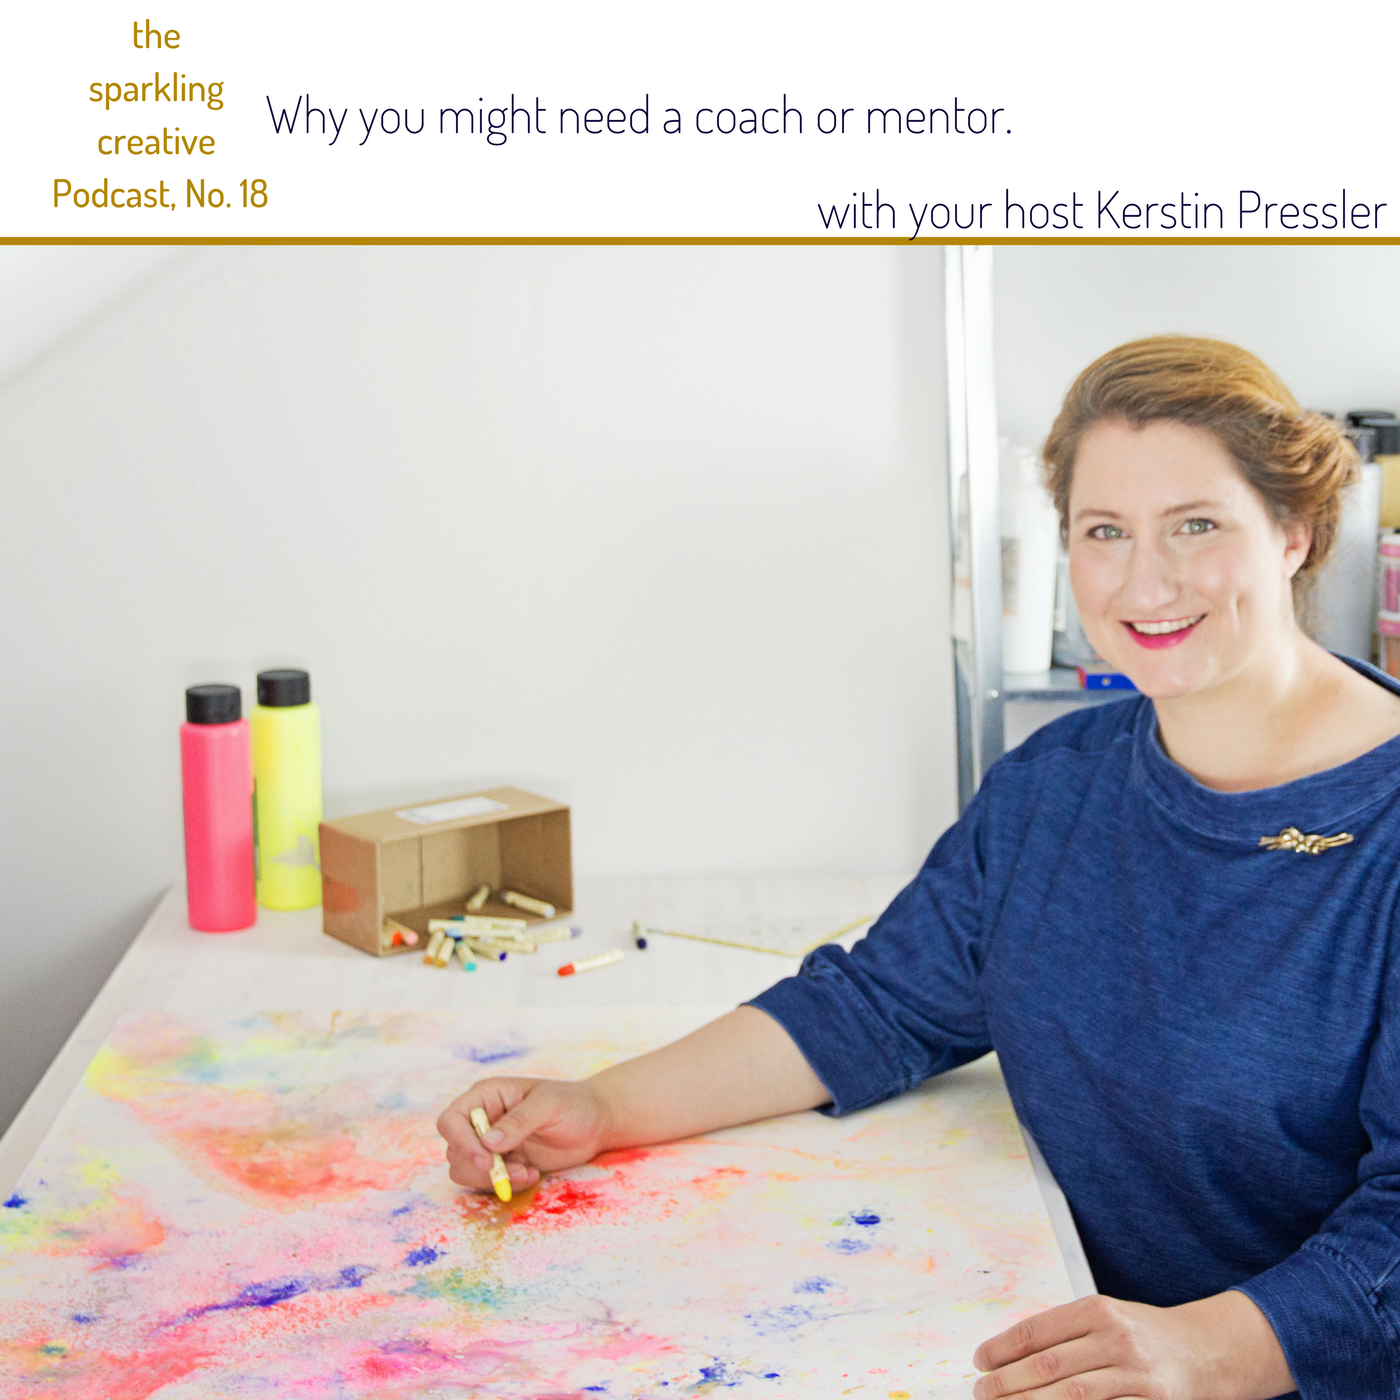 Artwork for Episode 18: Why you might need a coach or mentor